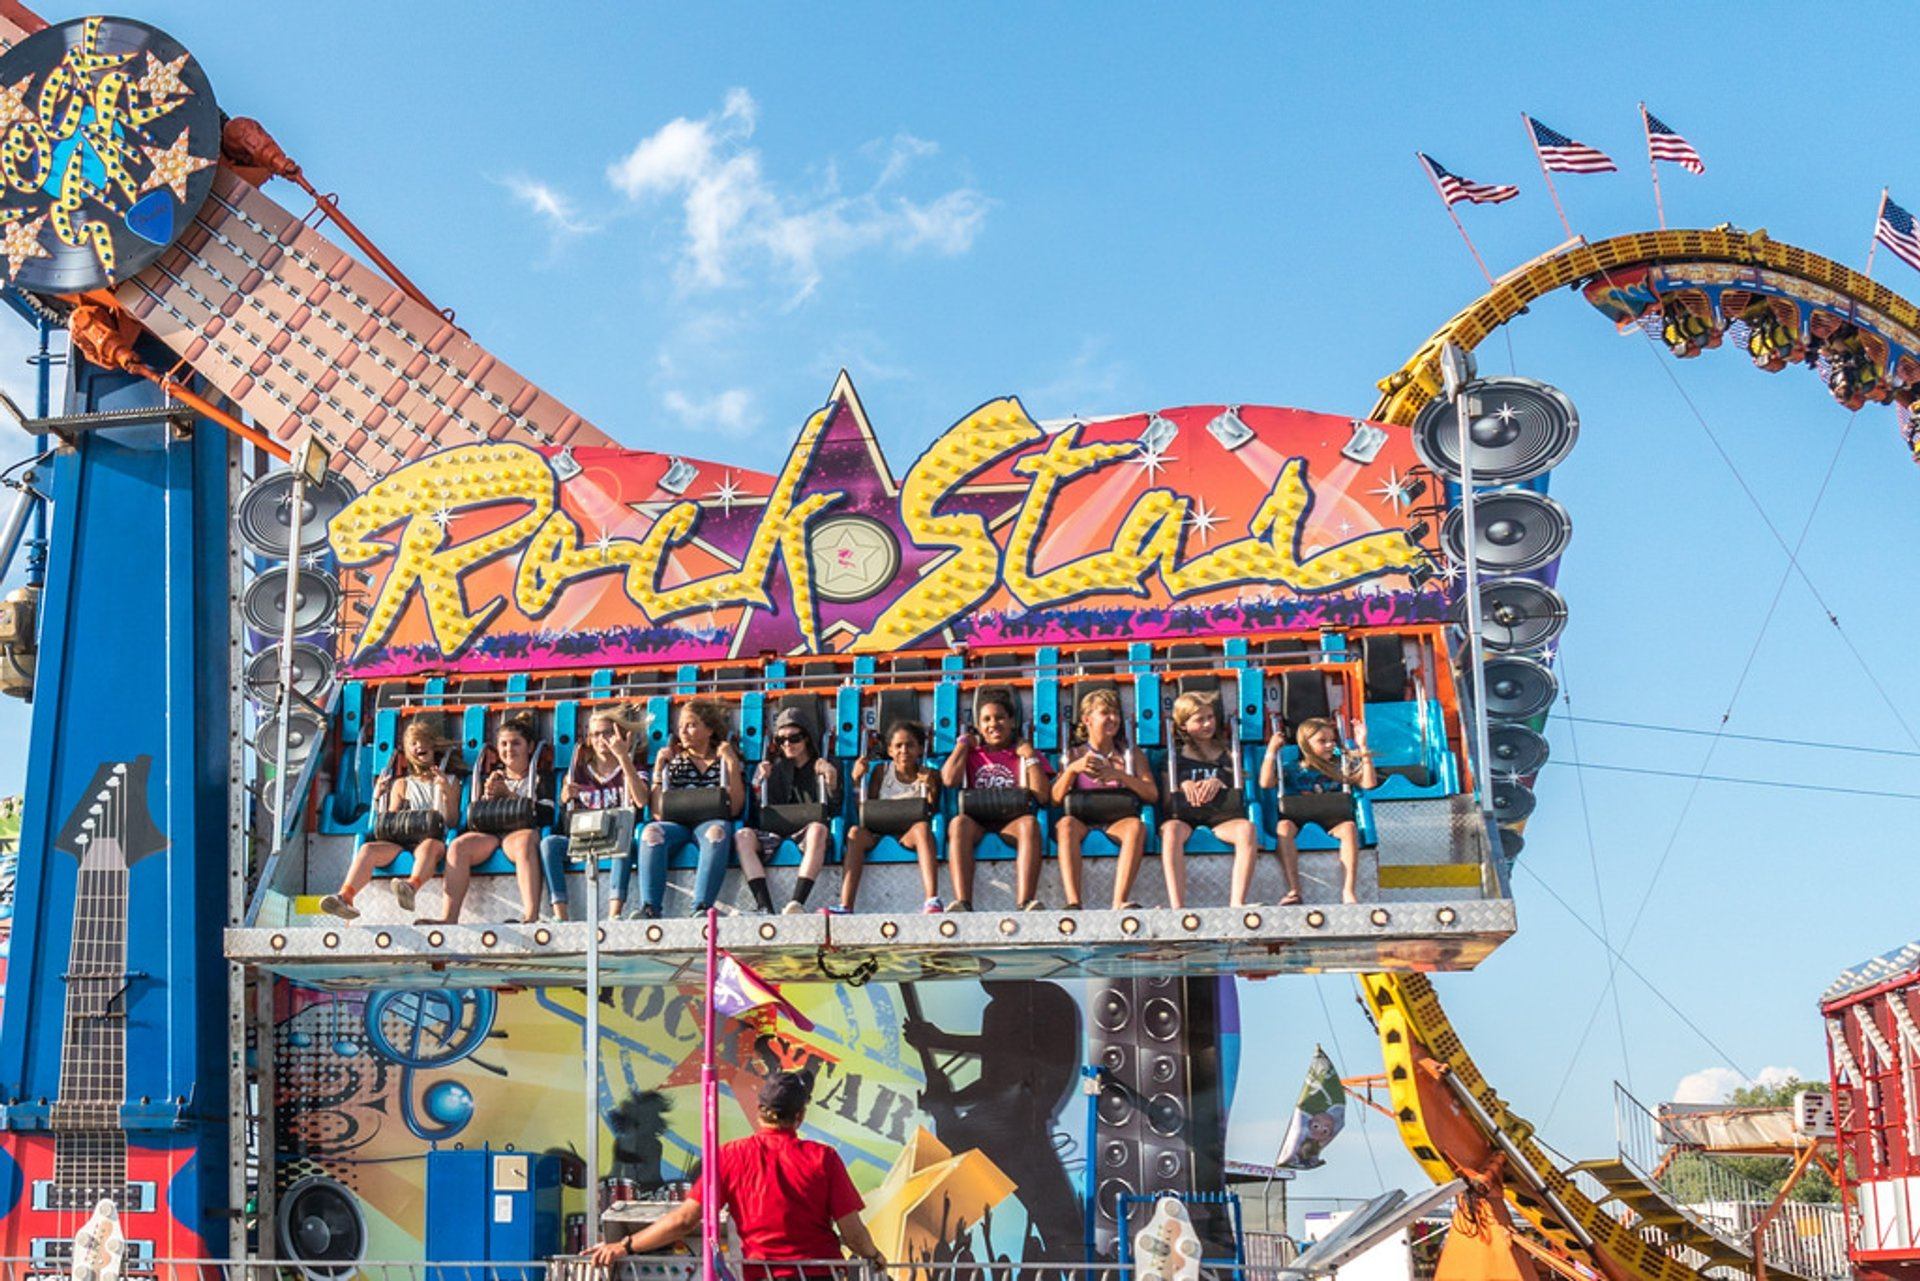 Illinois State Fair in Midwest - Best Season 2019